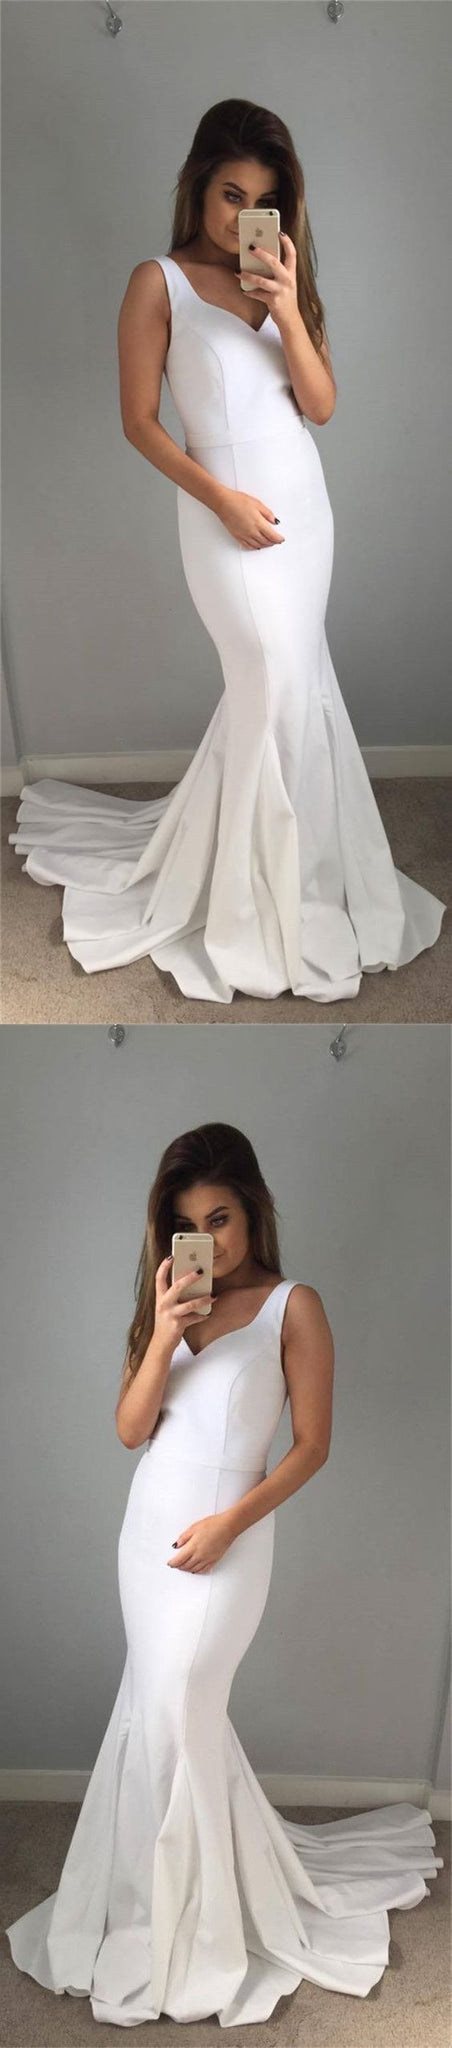 Simple white satin long prom dresses, formal mermaid evening dresses for women, cheap prom dresses,E0676